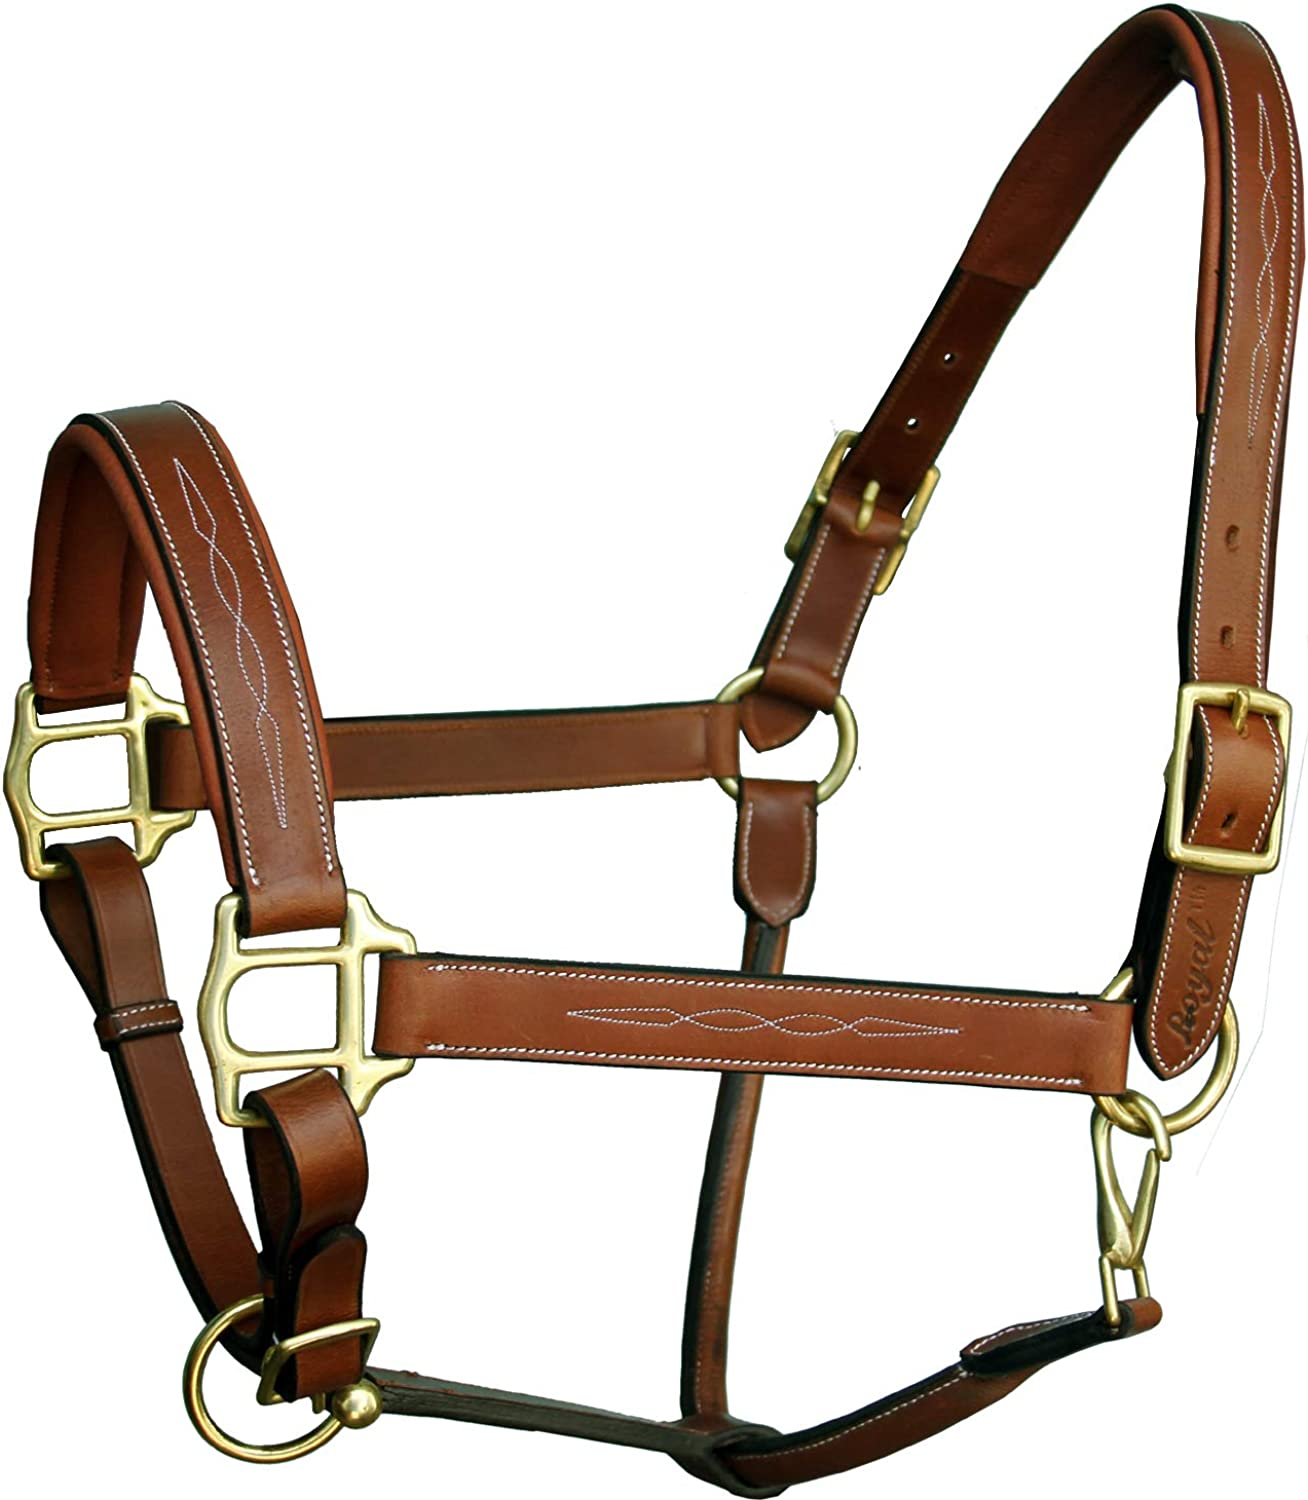 Exion Six Fancy Padded Halter and Brass Buckles   Equestrian Show Jumping Padded Halter   English Horse Riding Premium Tack